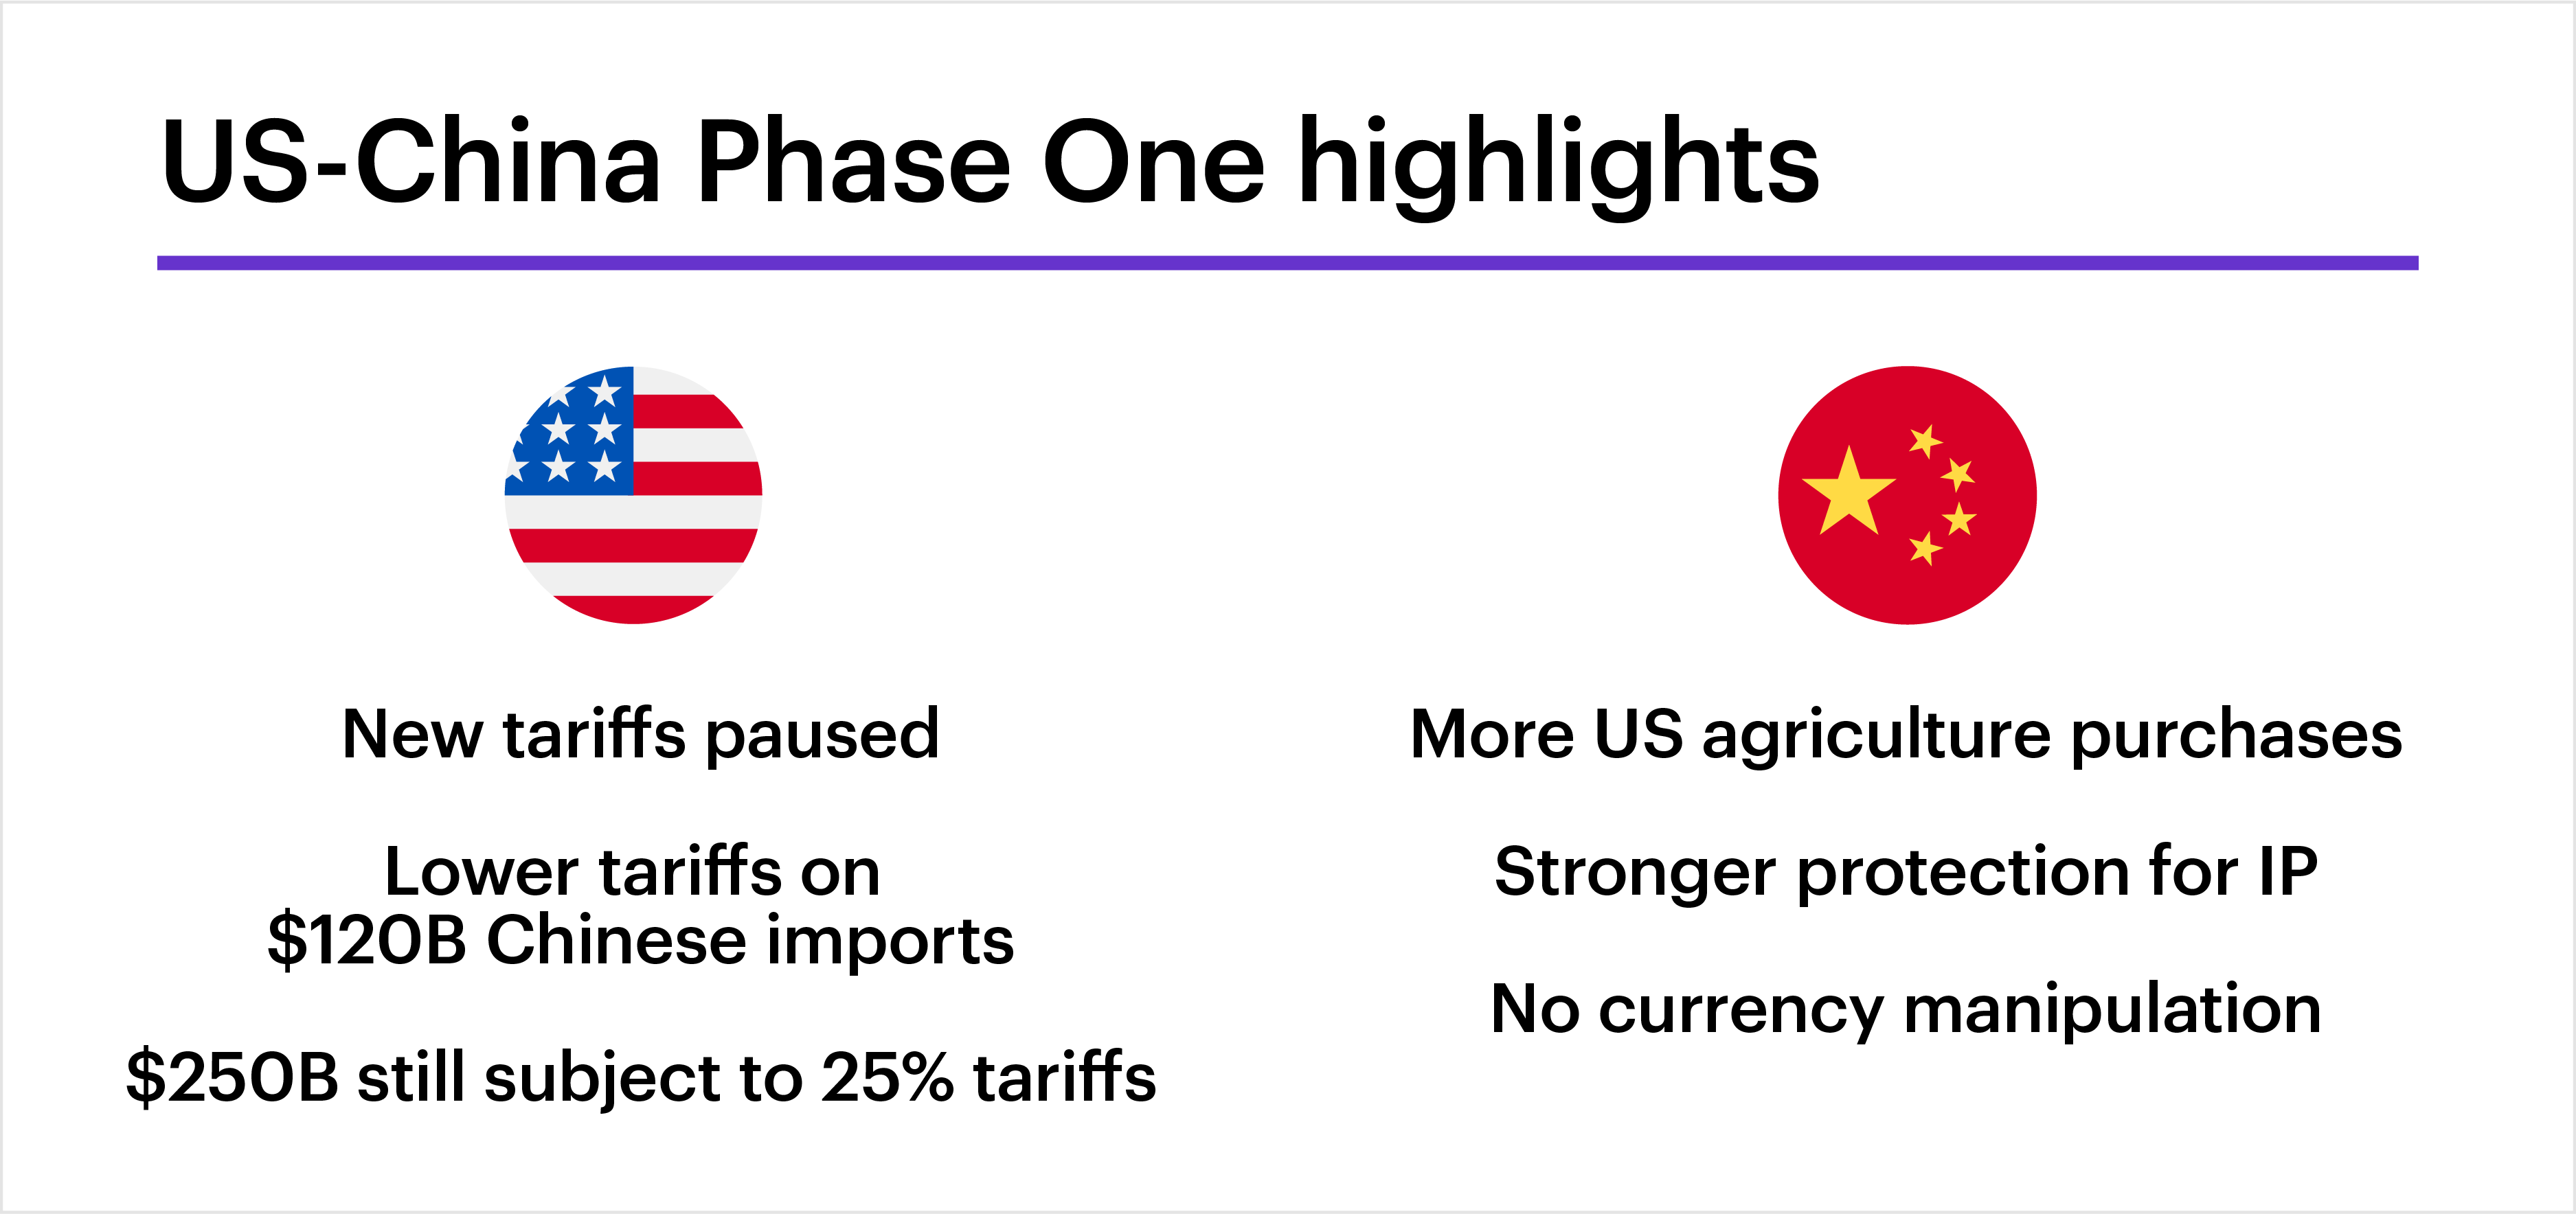 US-China Phase One agreement highlights